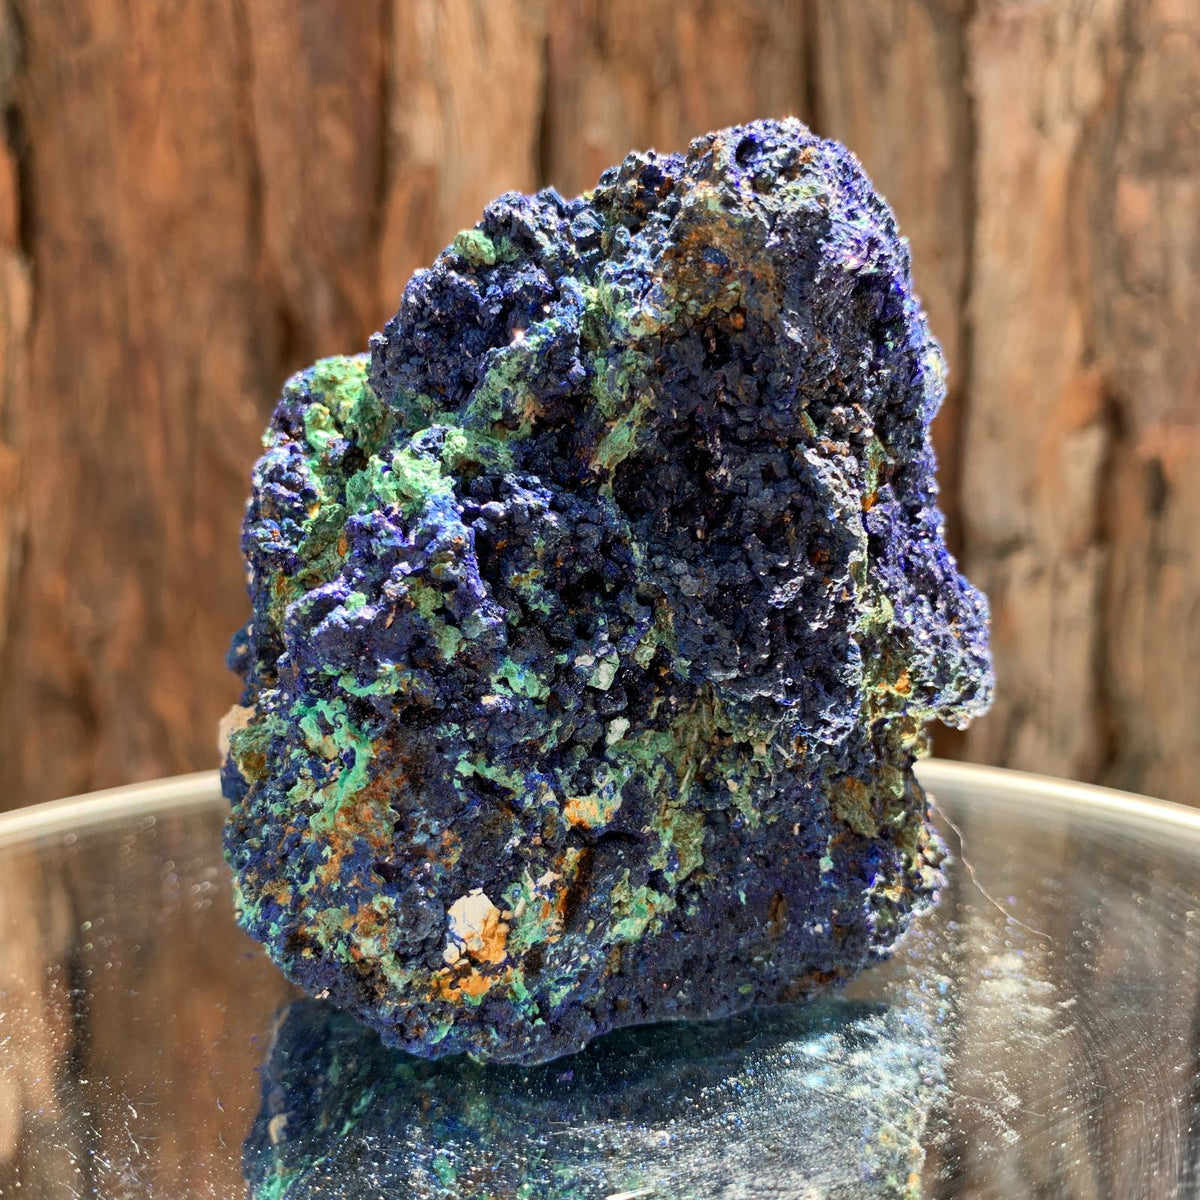 8.2cm 506g Azurite from Sepon Mine, Laos